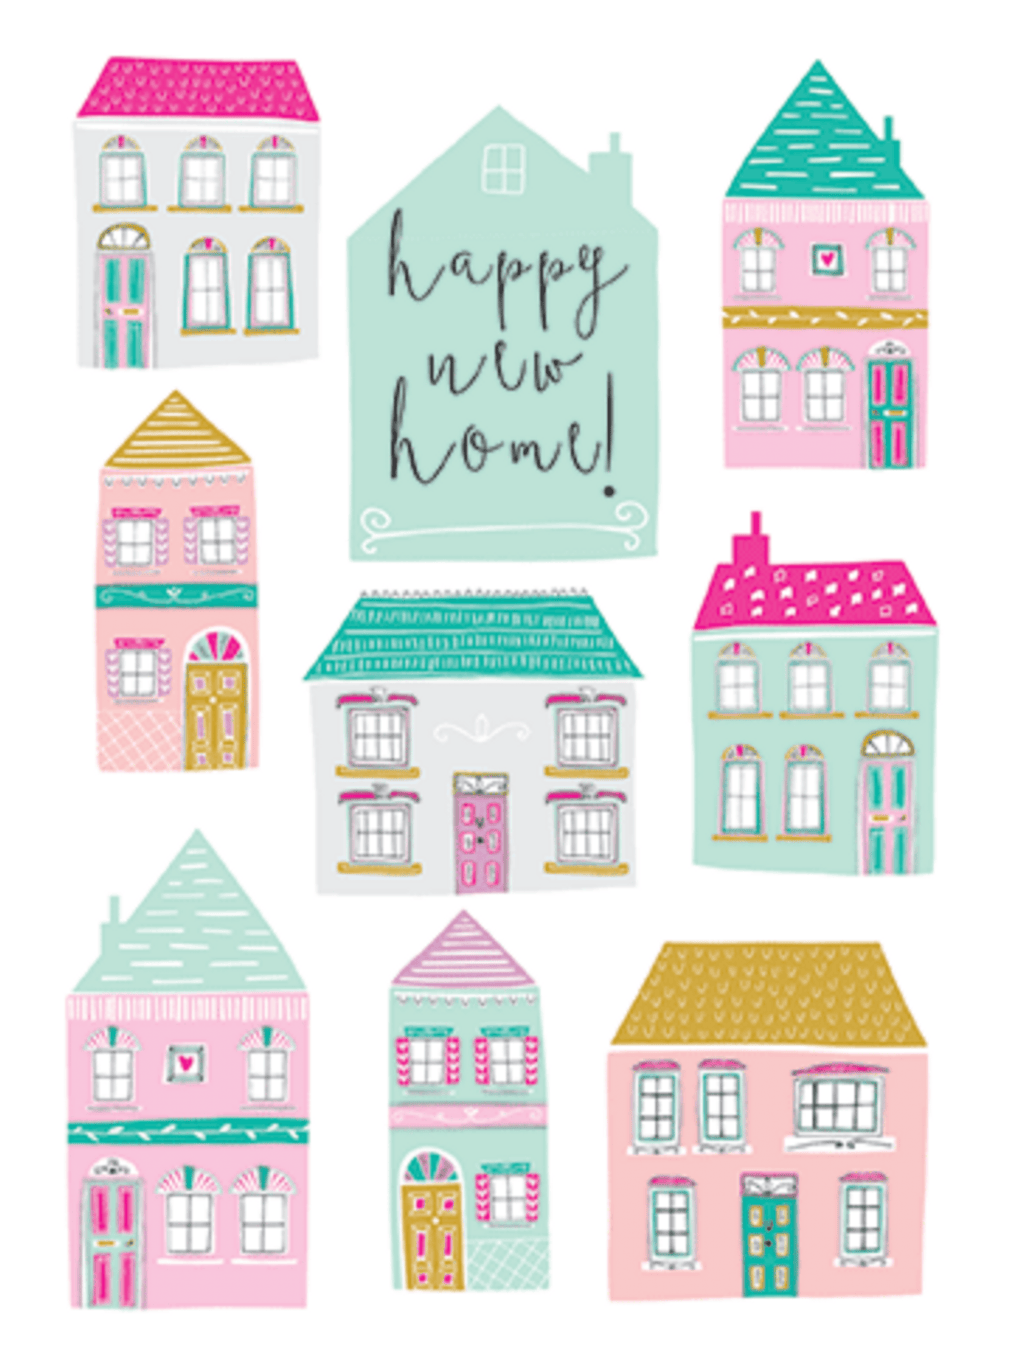 Happy New Home - Card